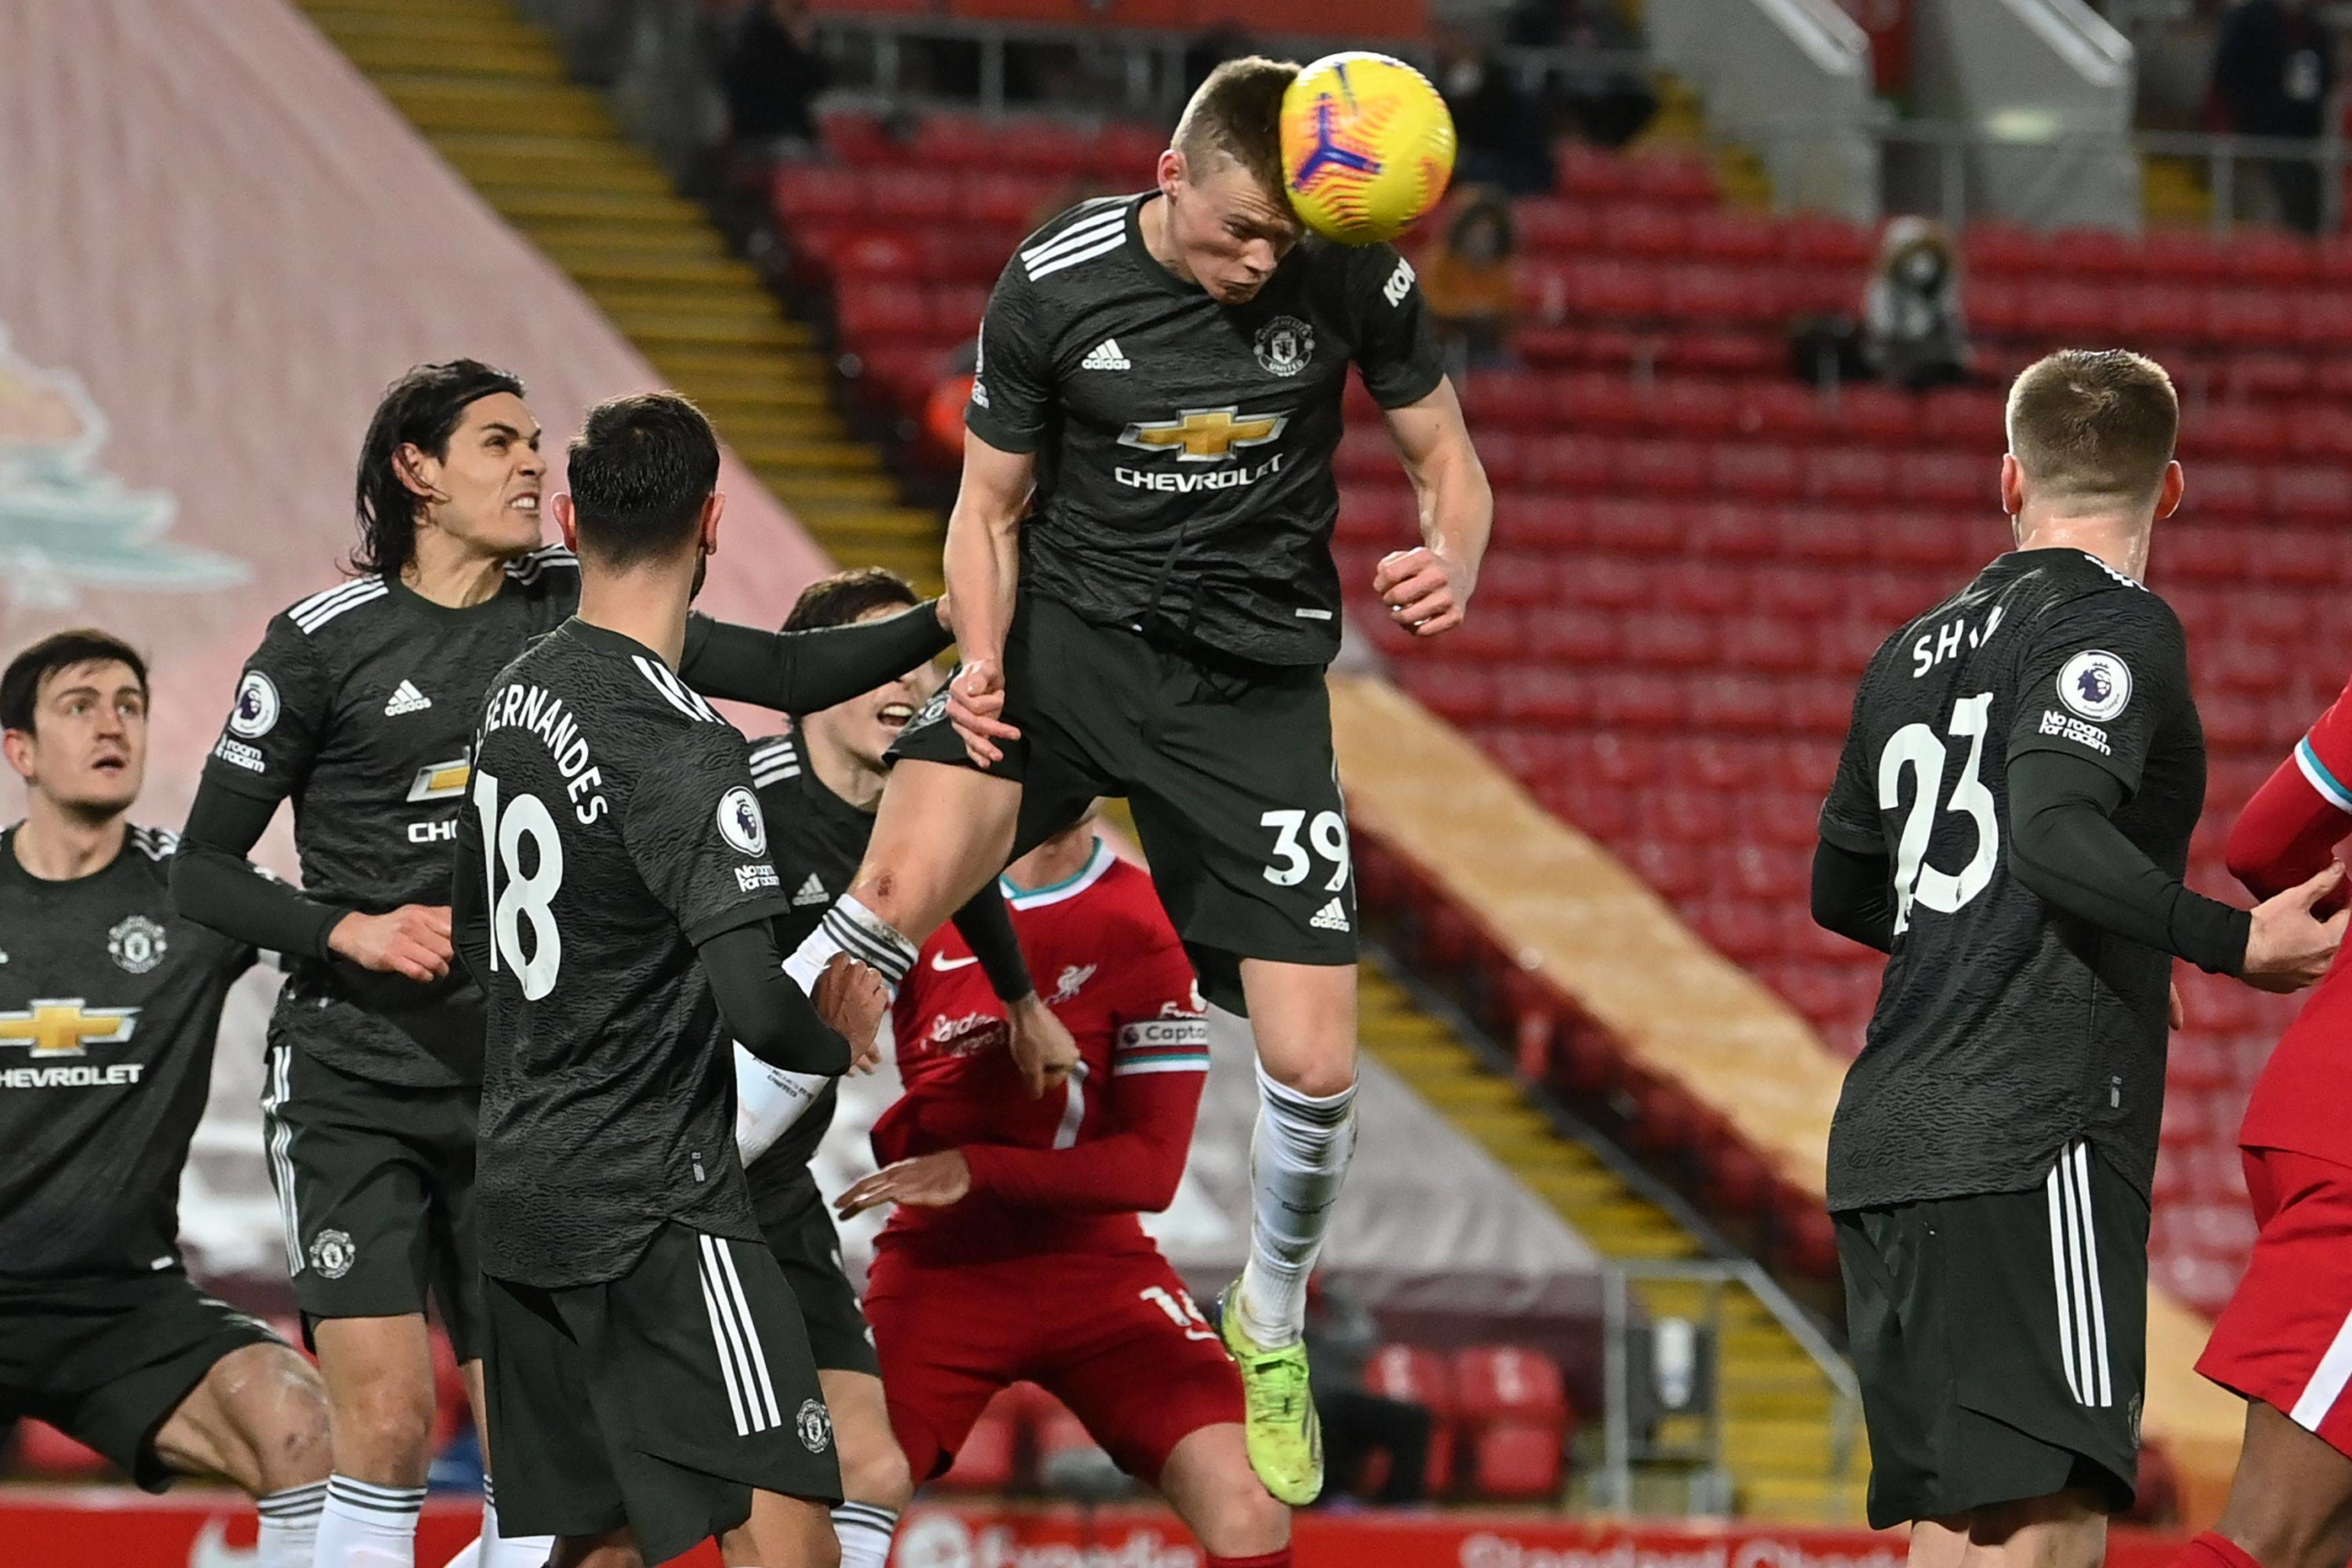 Manchester United midfielder Scott McTominay heads the ball during his club's match against Liverpool at Anfield in Liverpool, England, on Sunday. | AFP-JIJI